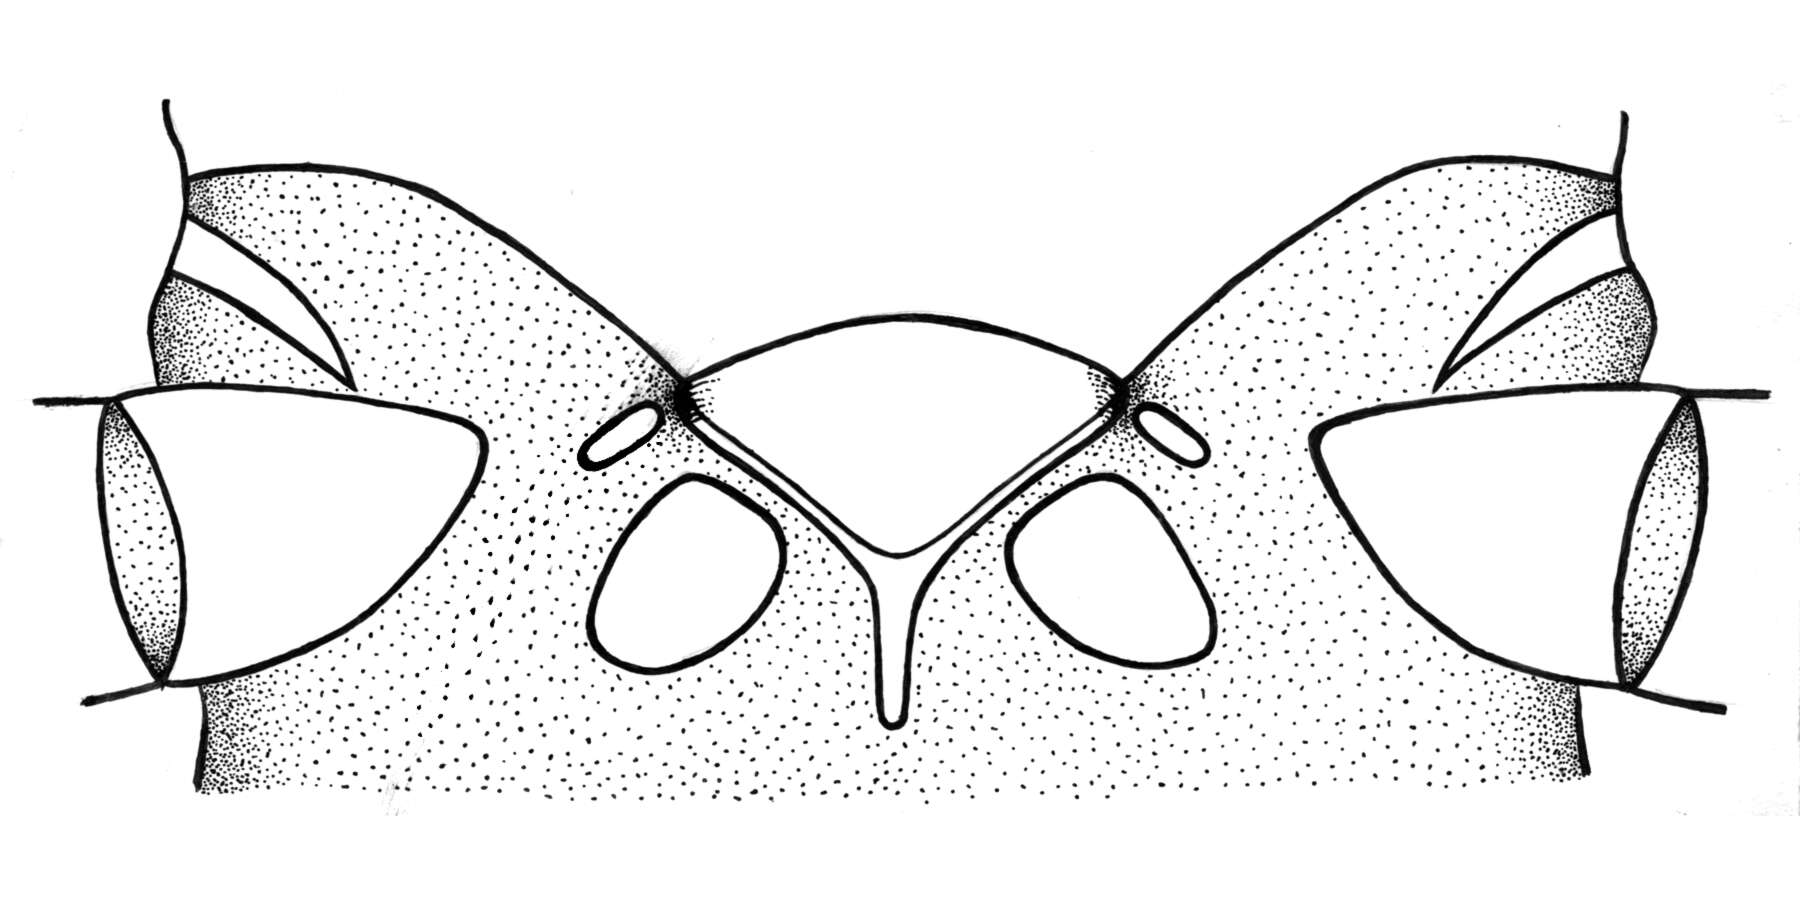 Image of Polyneoptera